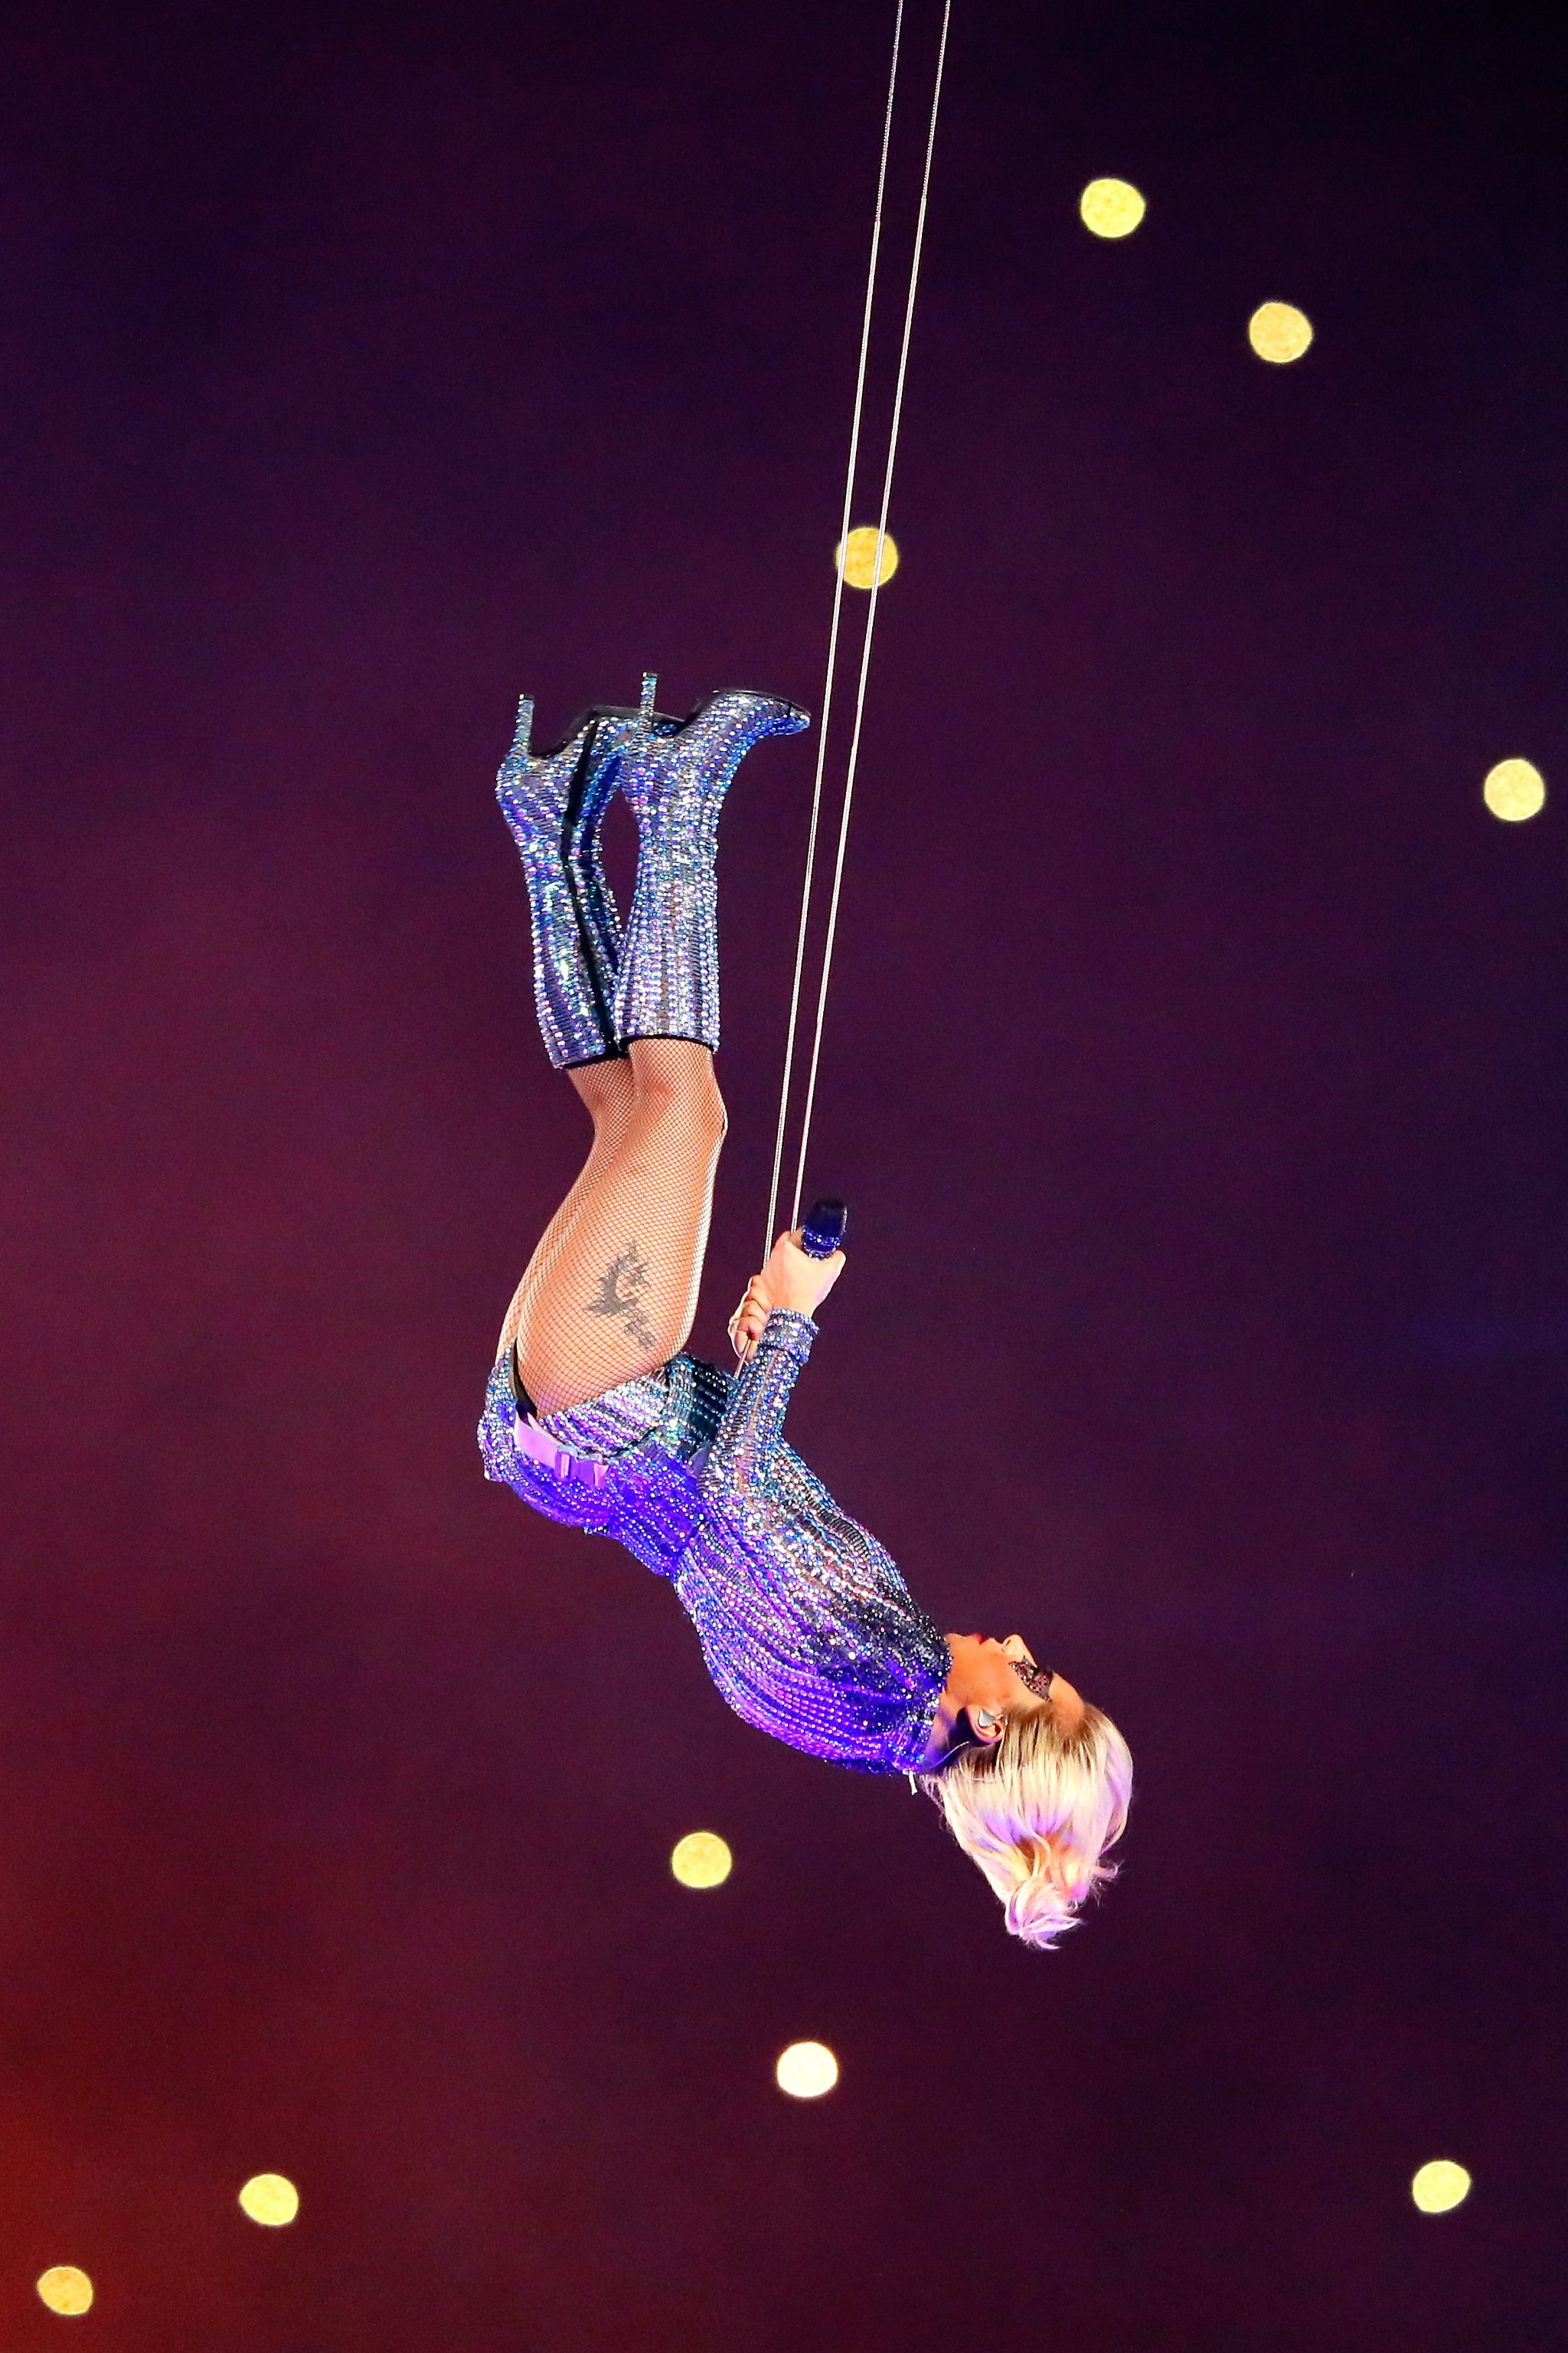 lady-gaga-super-bowl-halftime-show-pictures-2017.jpg